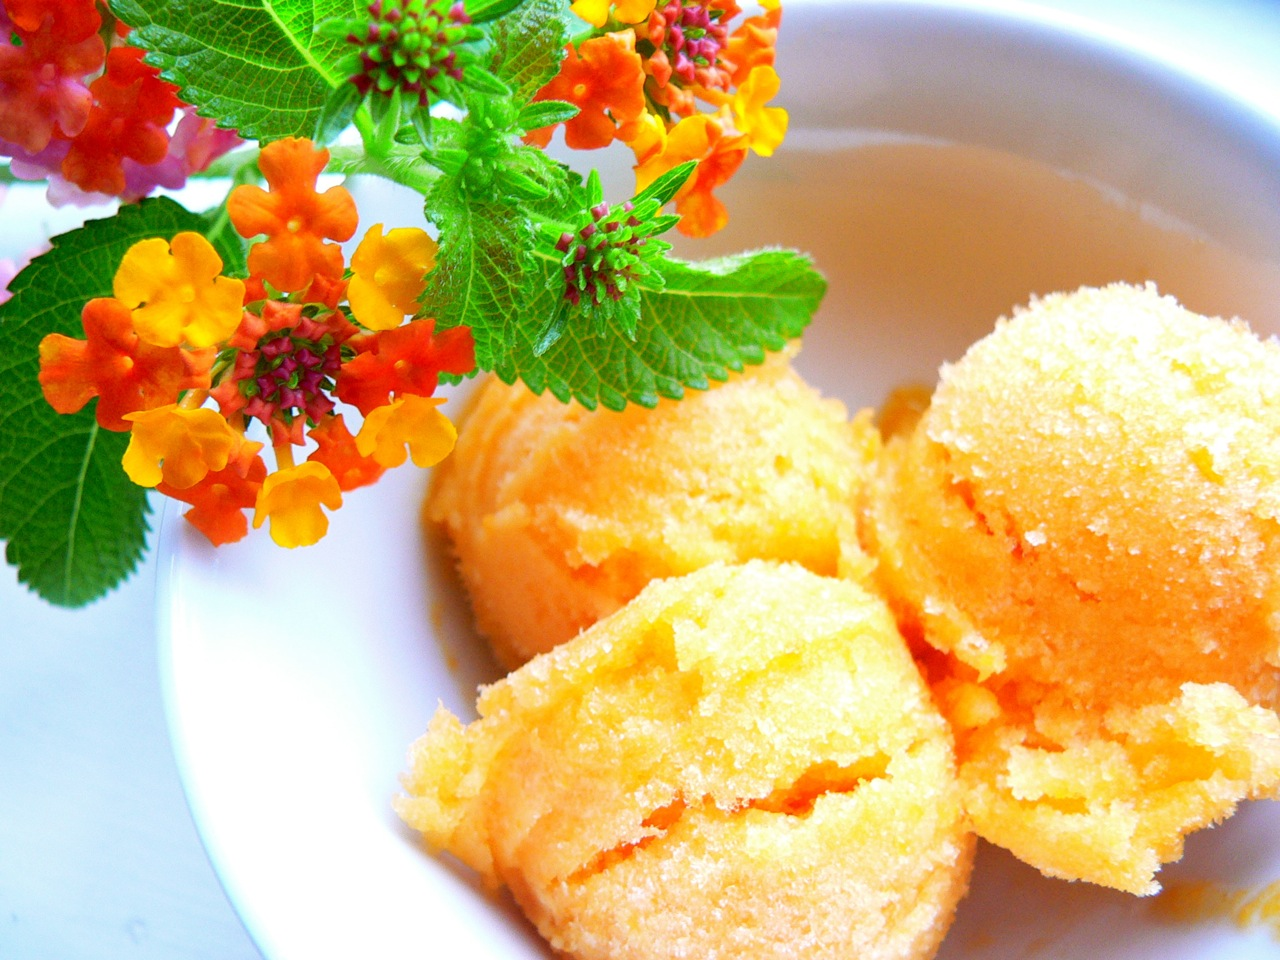 Apricot Champagne Sorbet | The Frozen Fix: Ice cream ...